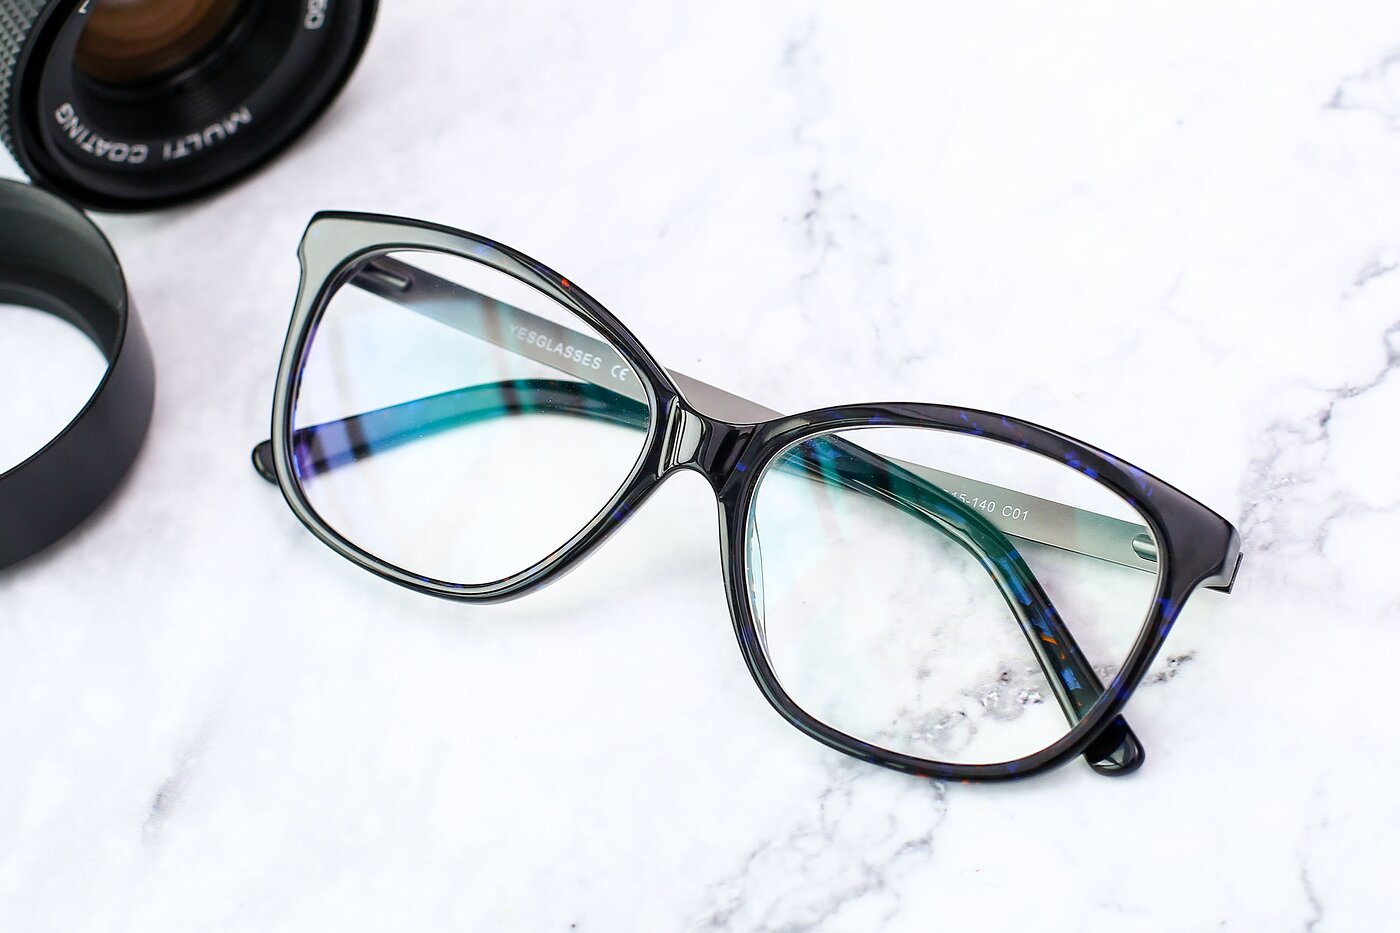 Floral Black Spring Hinges Butterfly Full-Rim Eyeglasses